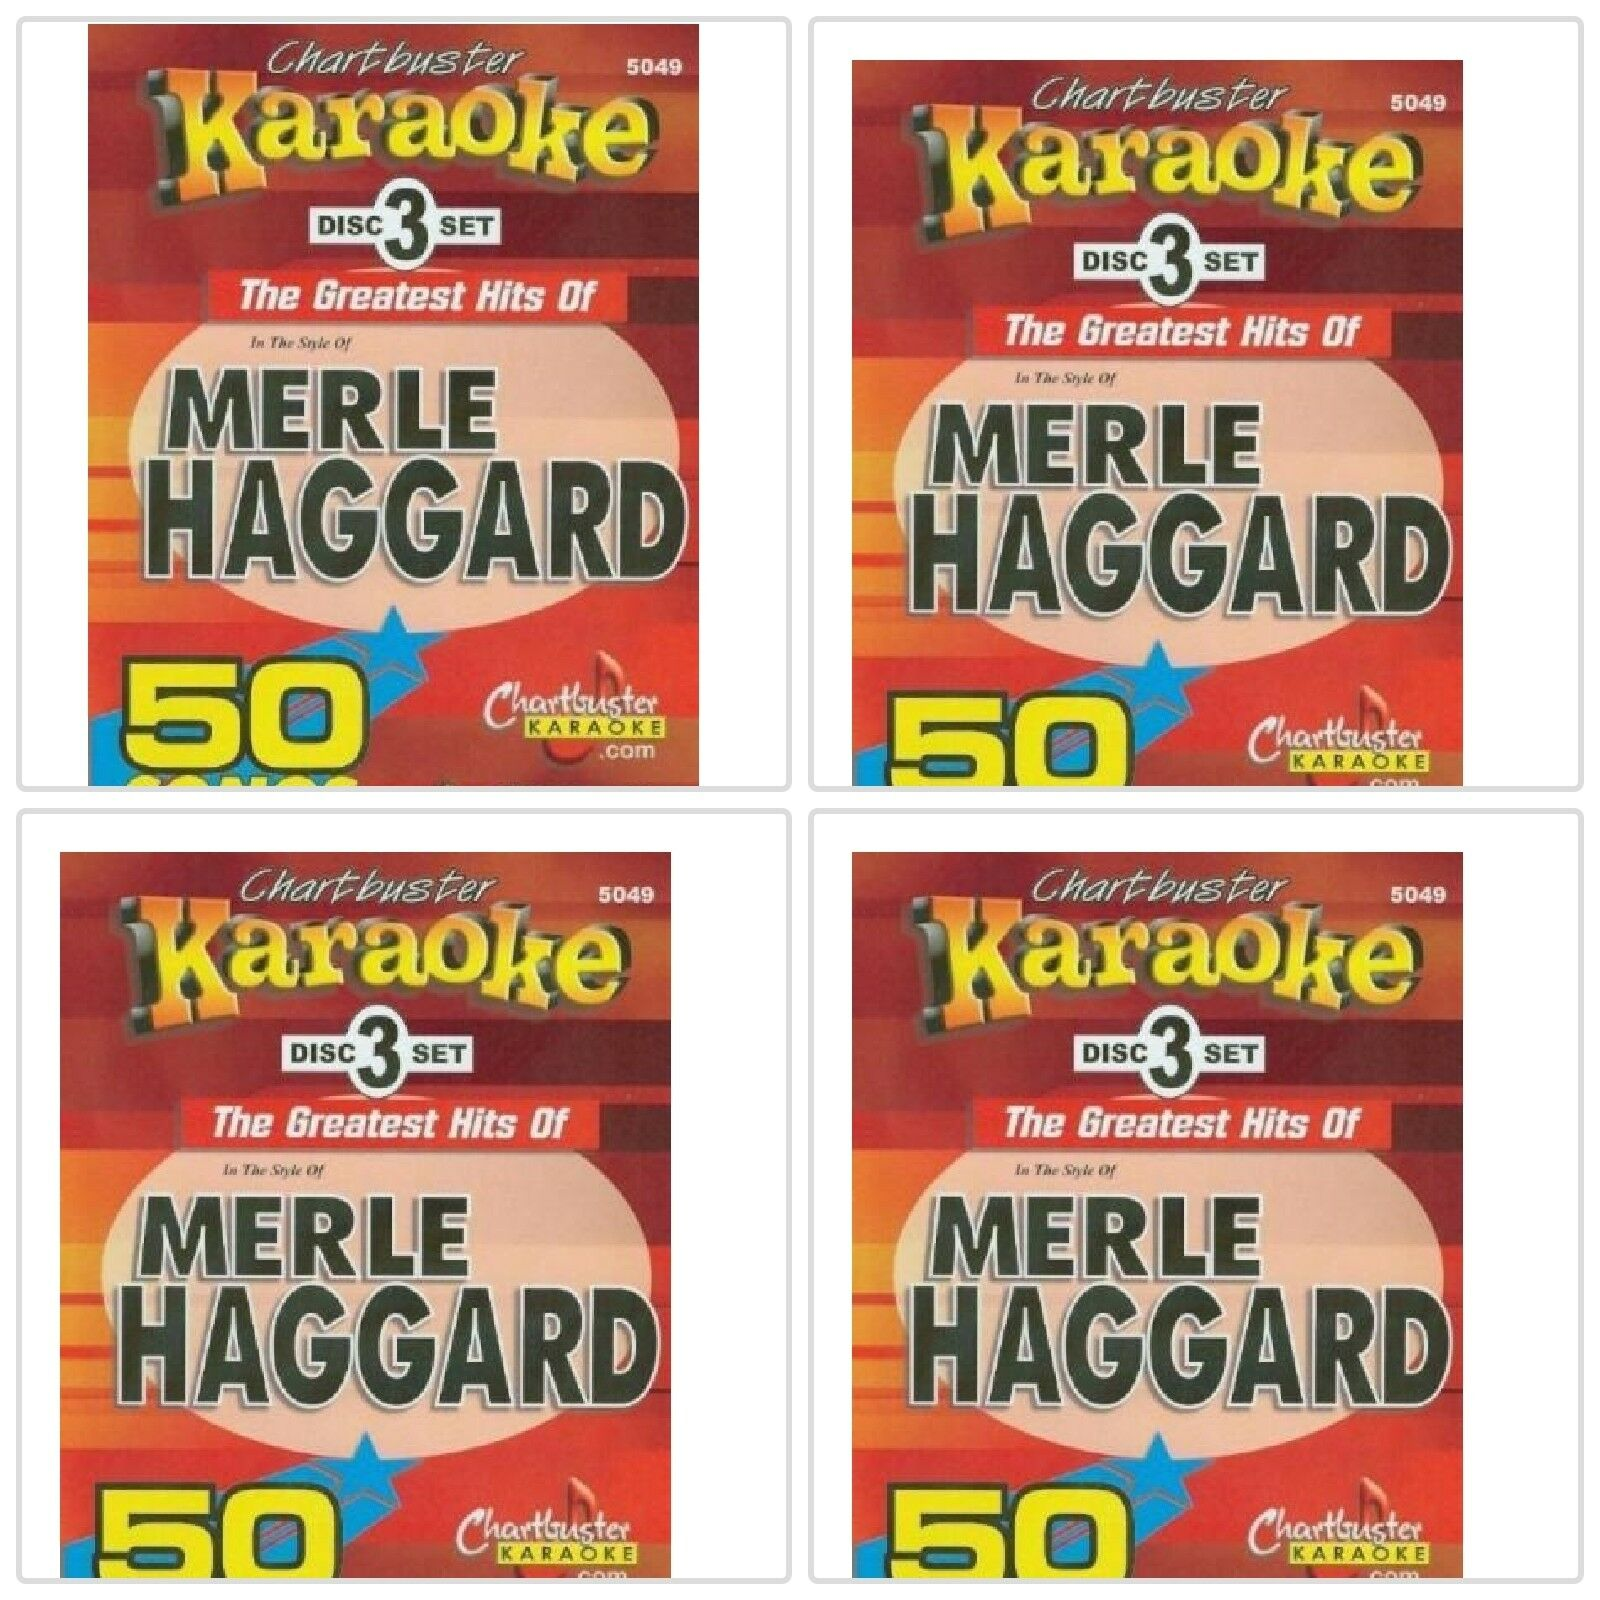 Details about Chartbuster Karaoke CDG 3 Disc Pack CB5049 - Merle Haggard